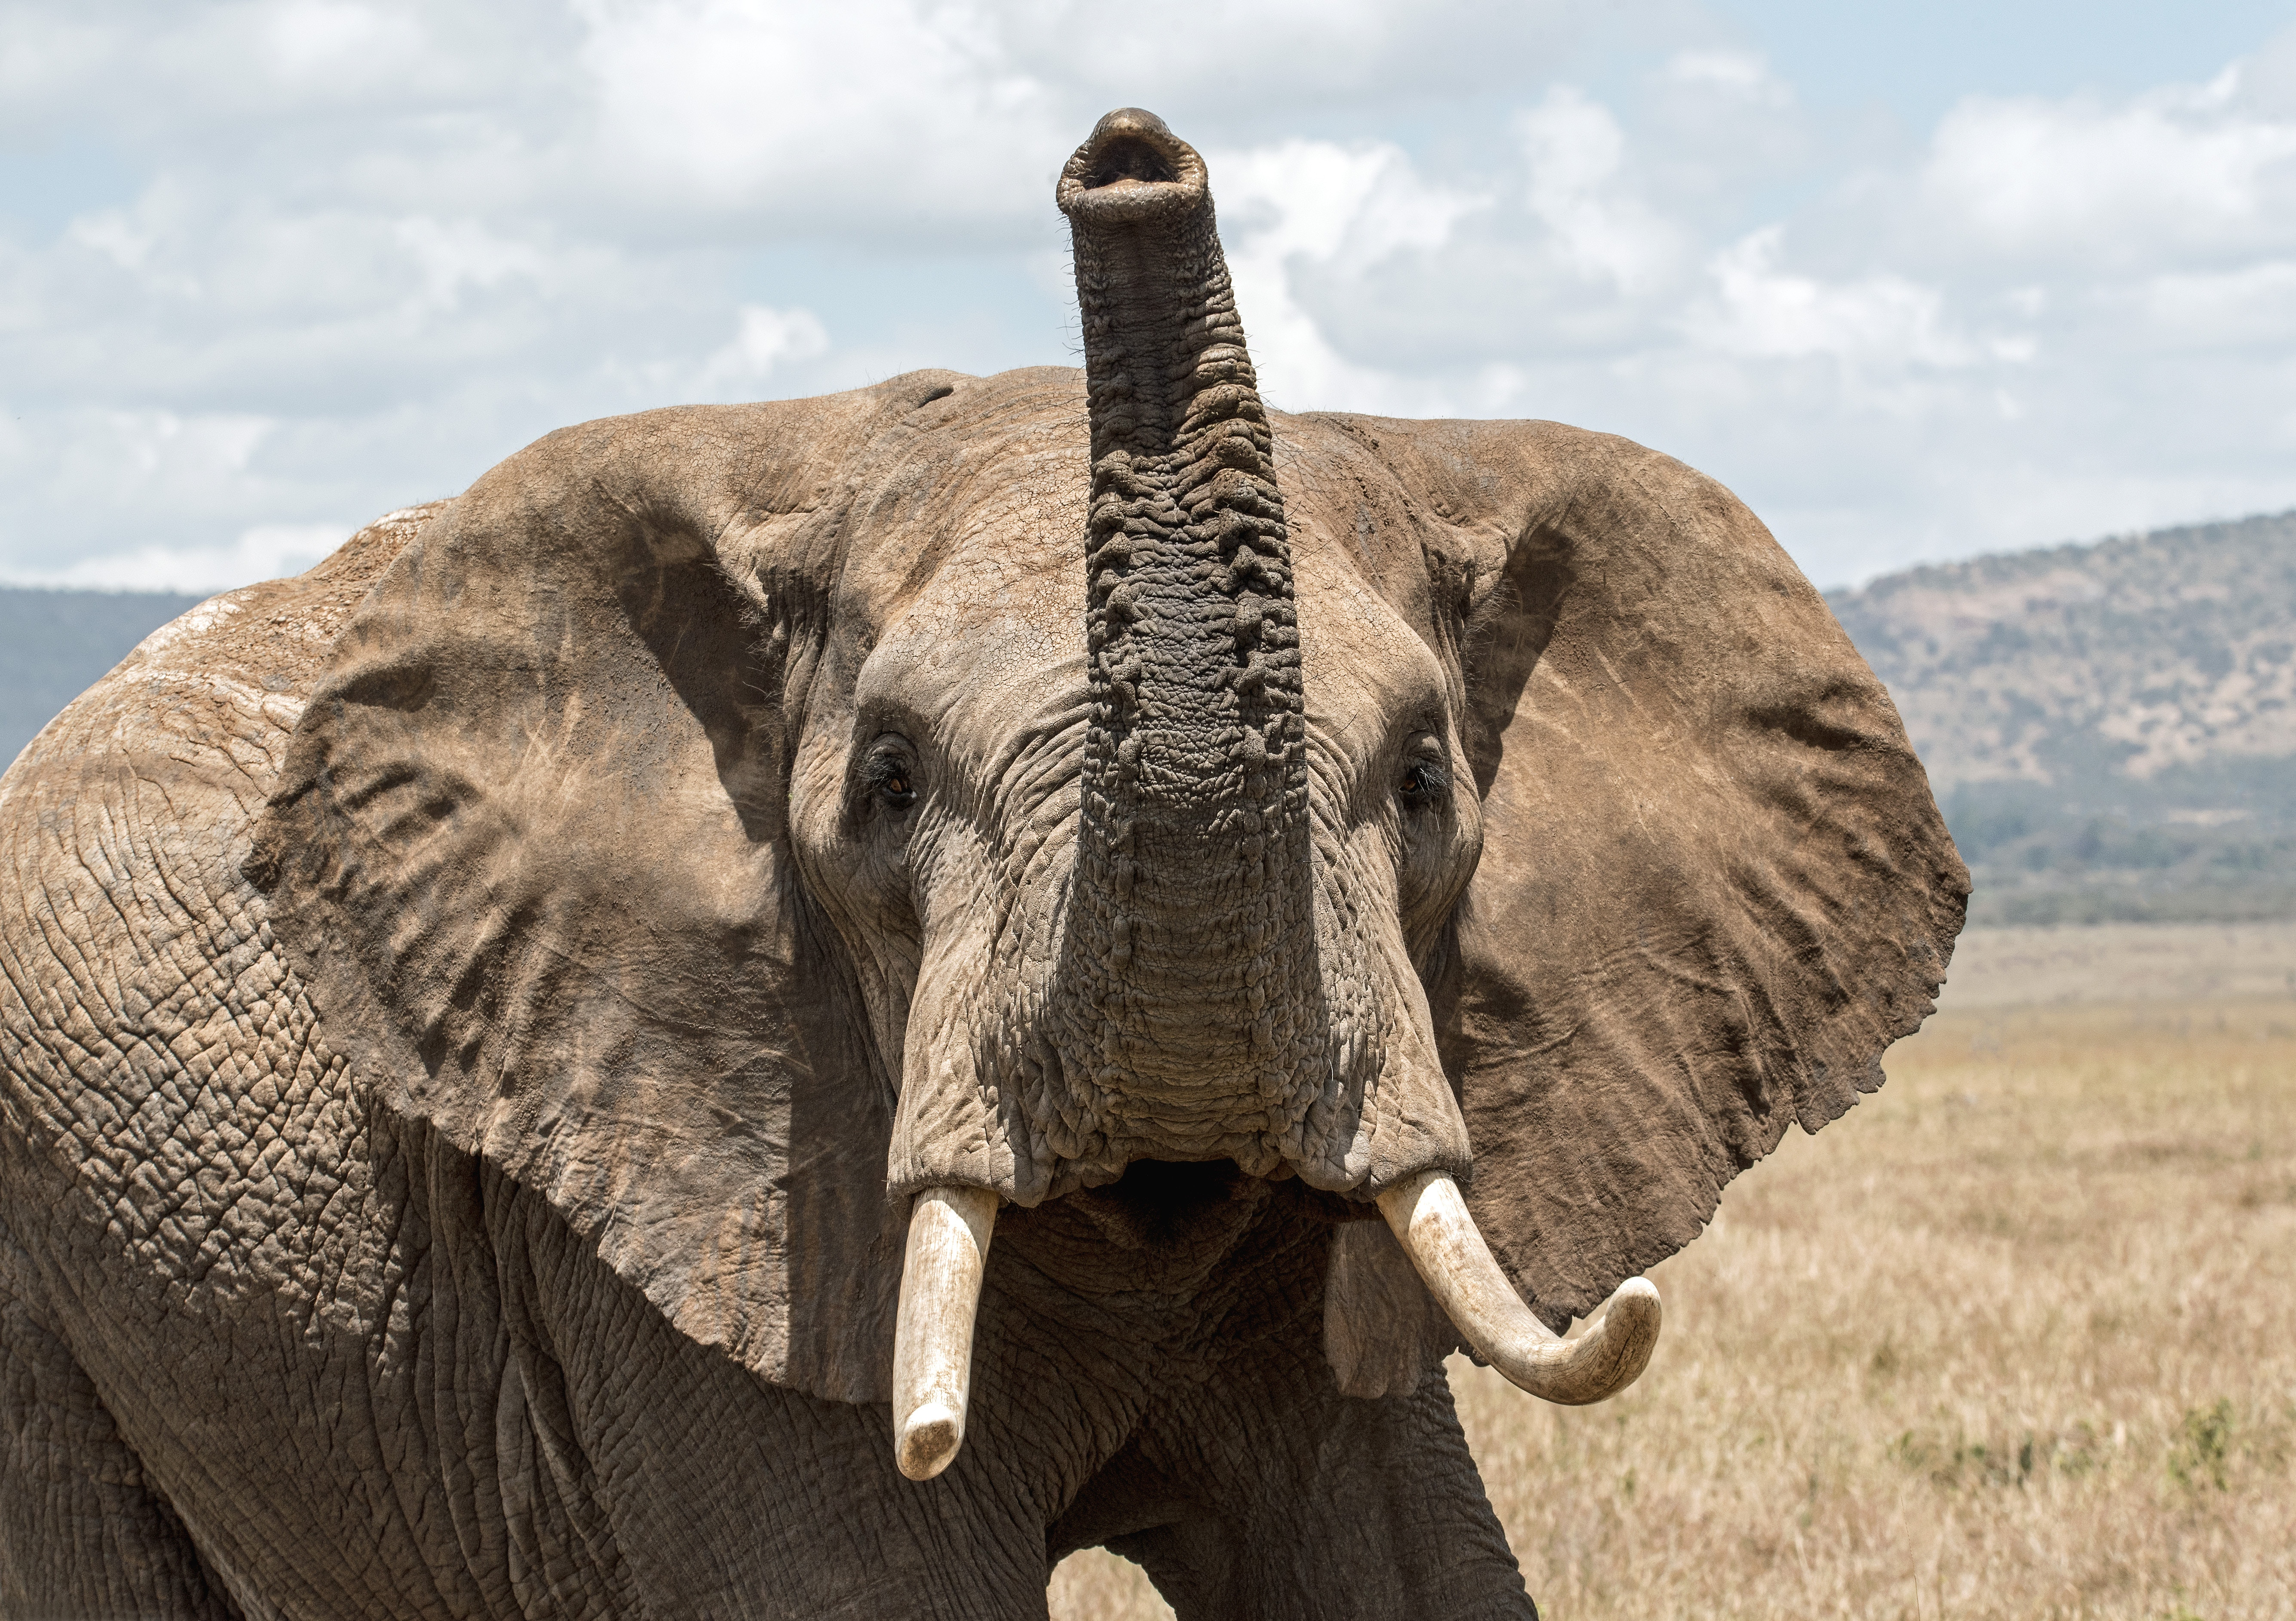 Elephant - affected by wildlife offences in Tanzania